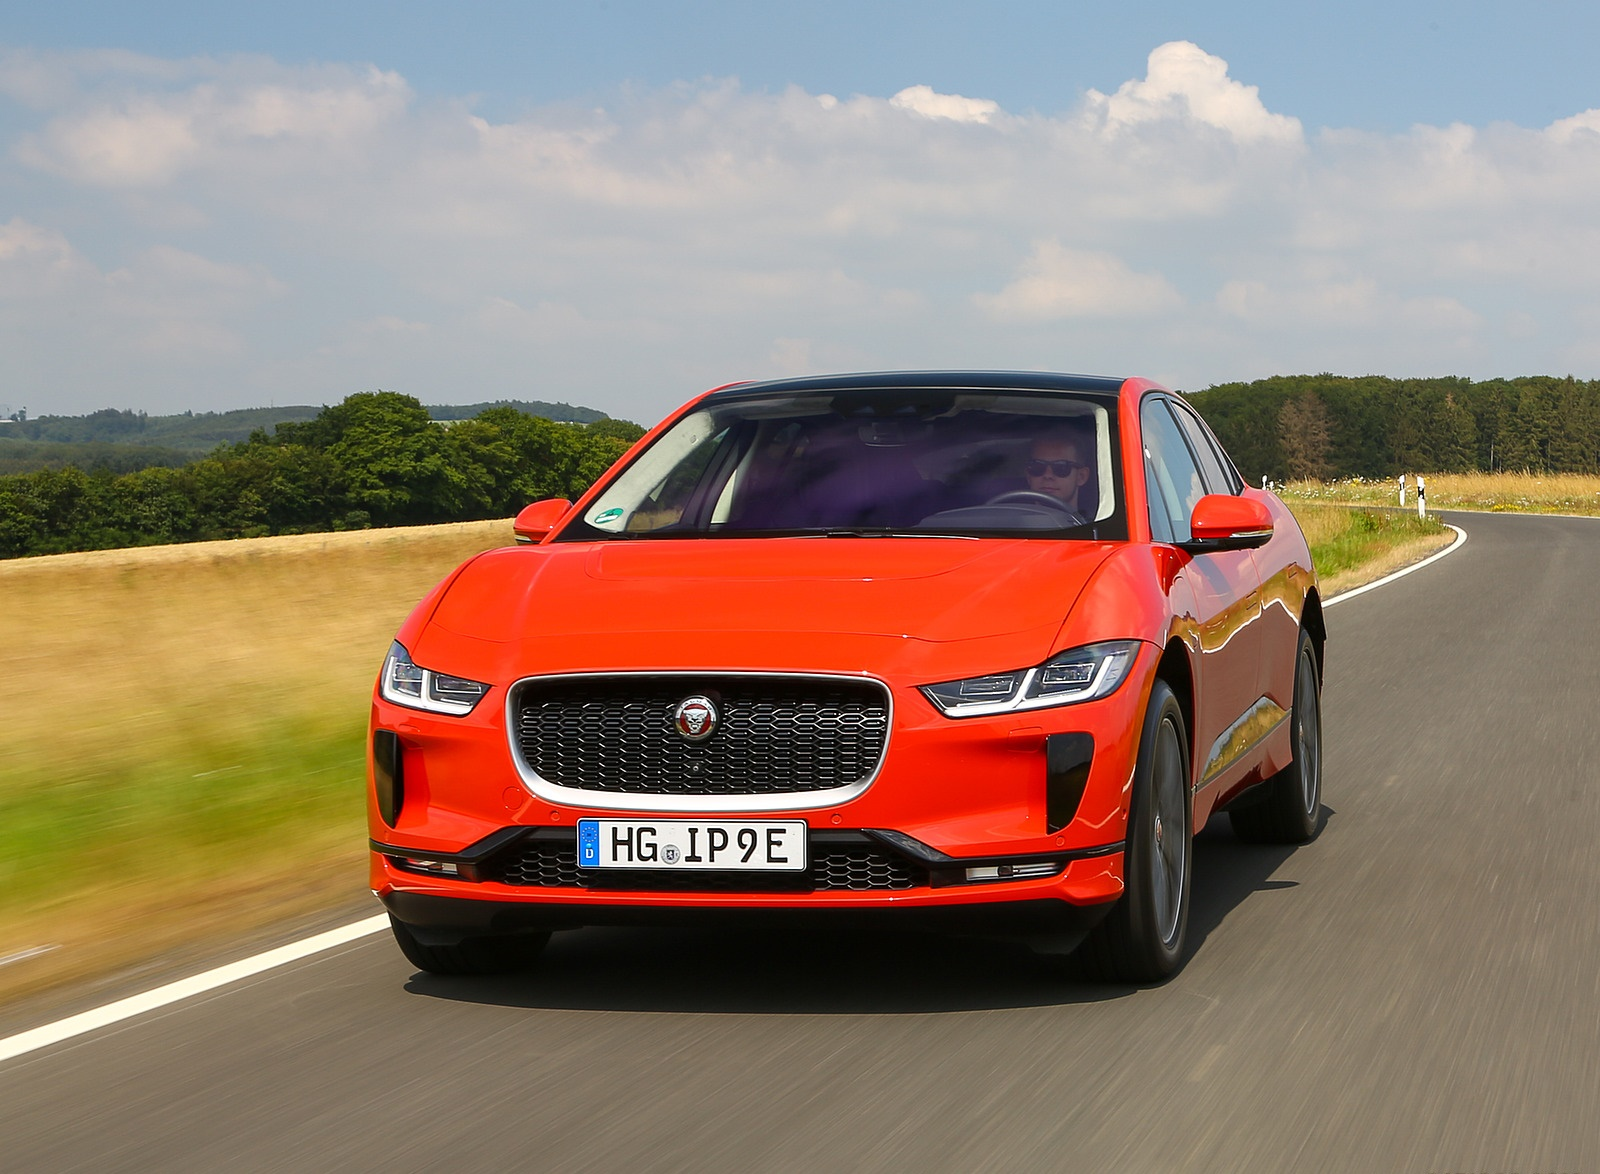 2019 Jaguar I-PACE EV400 AWD HSE First Edition (Color: Photon Red) Front Wallpapers (5)